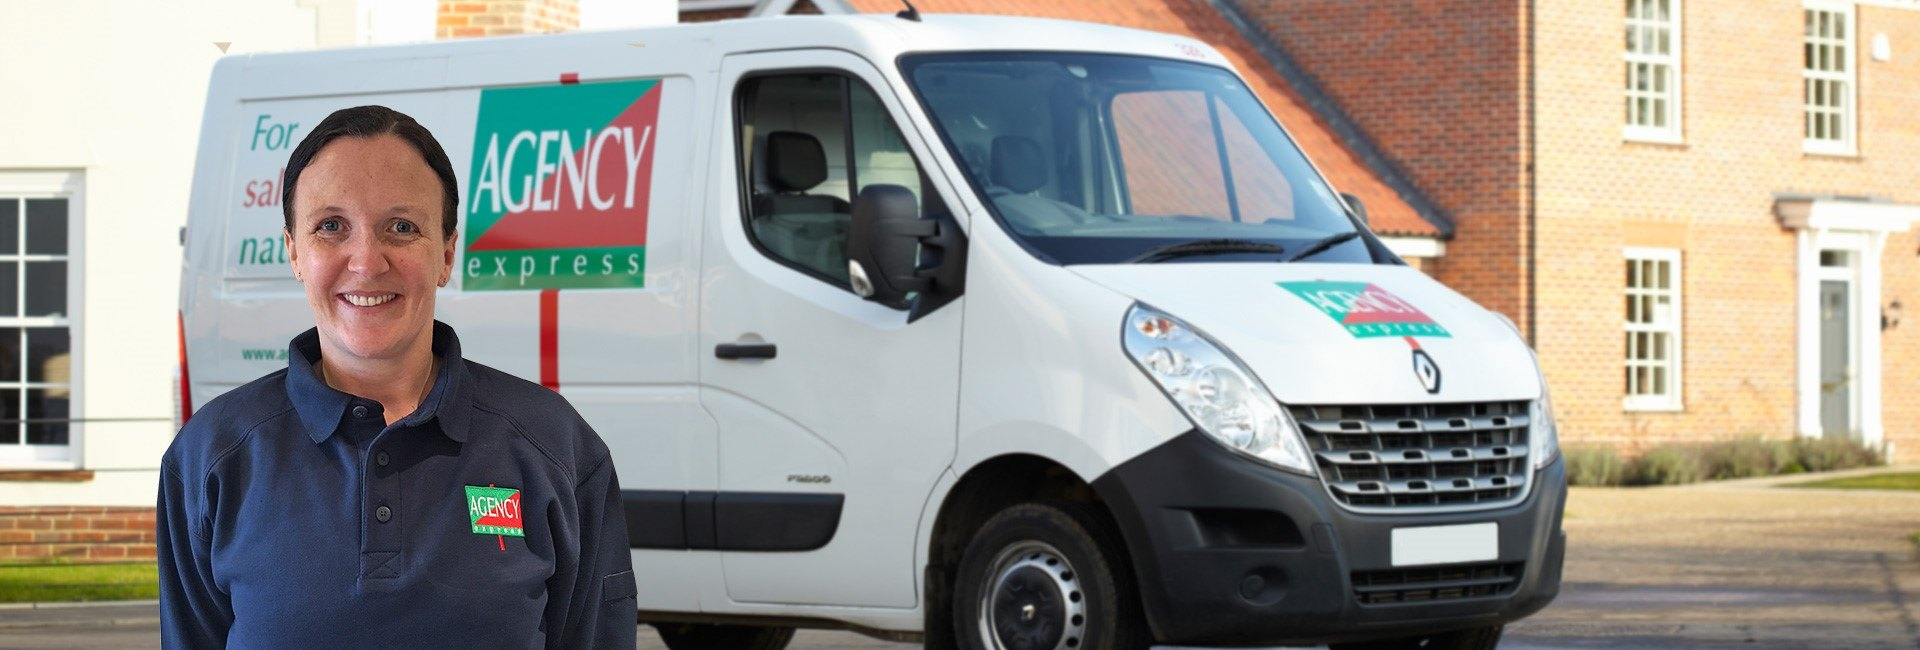 Agency Express franchise case study. Franchisee Gemma Vittraino with van.